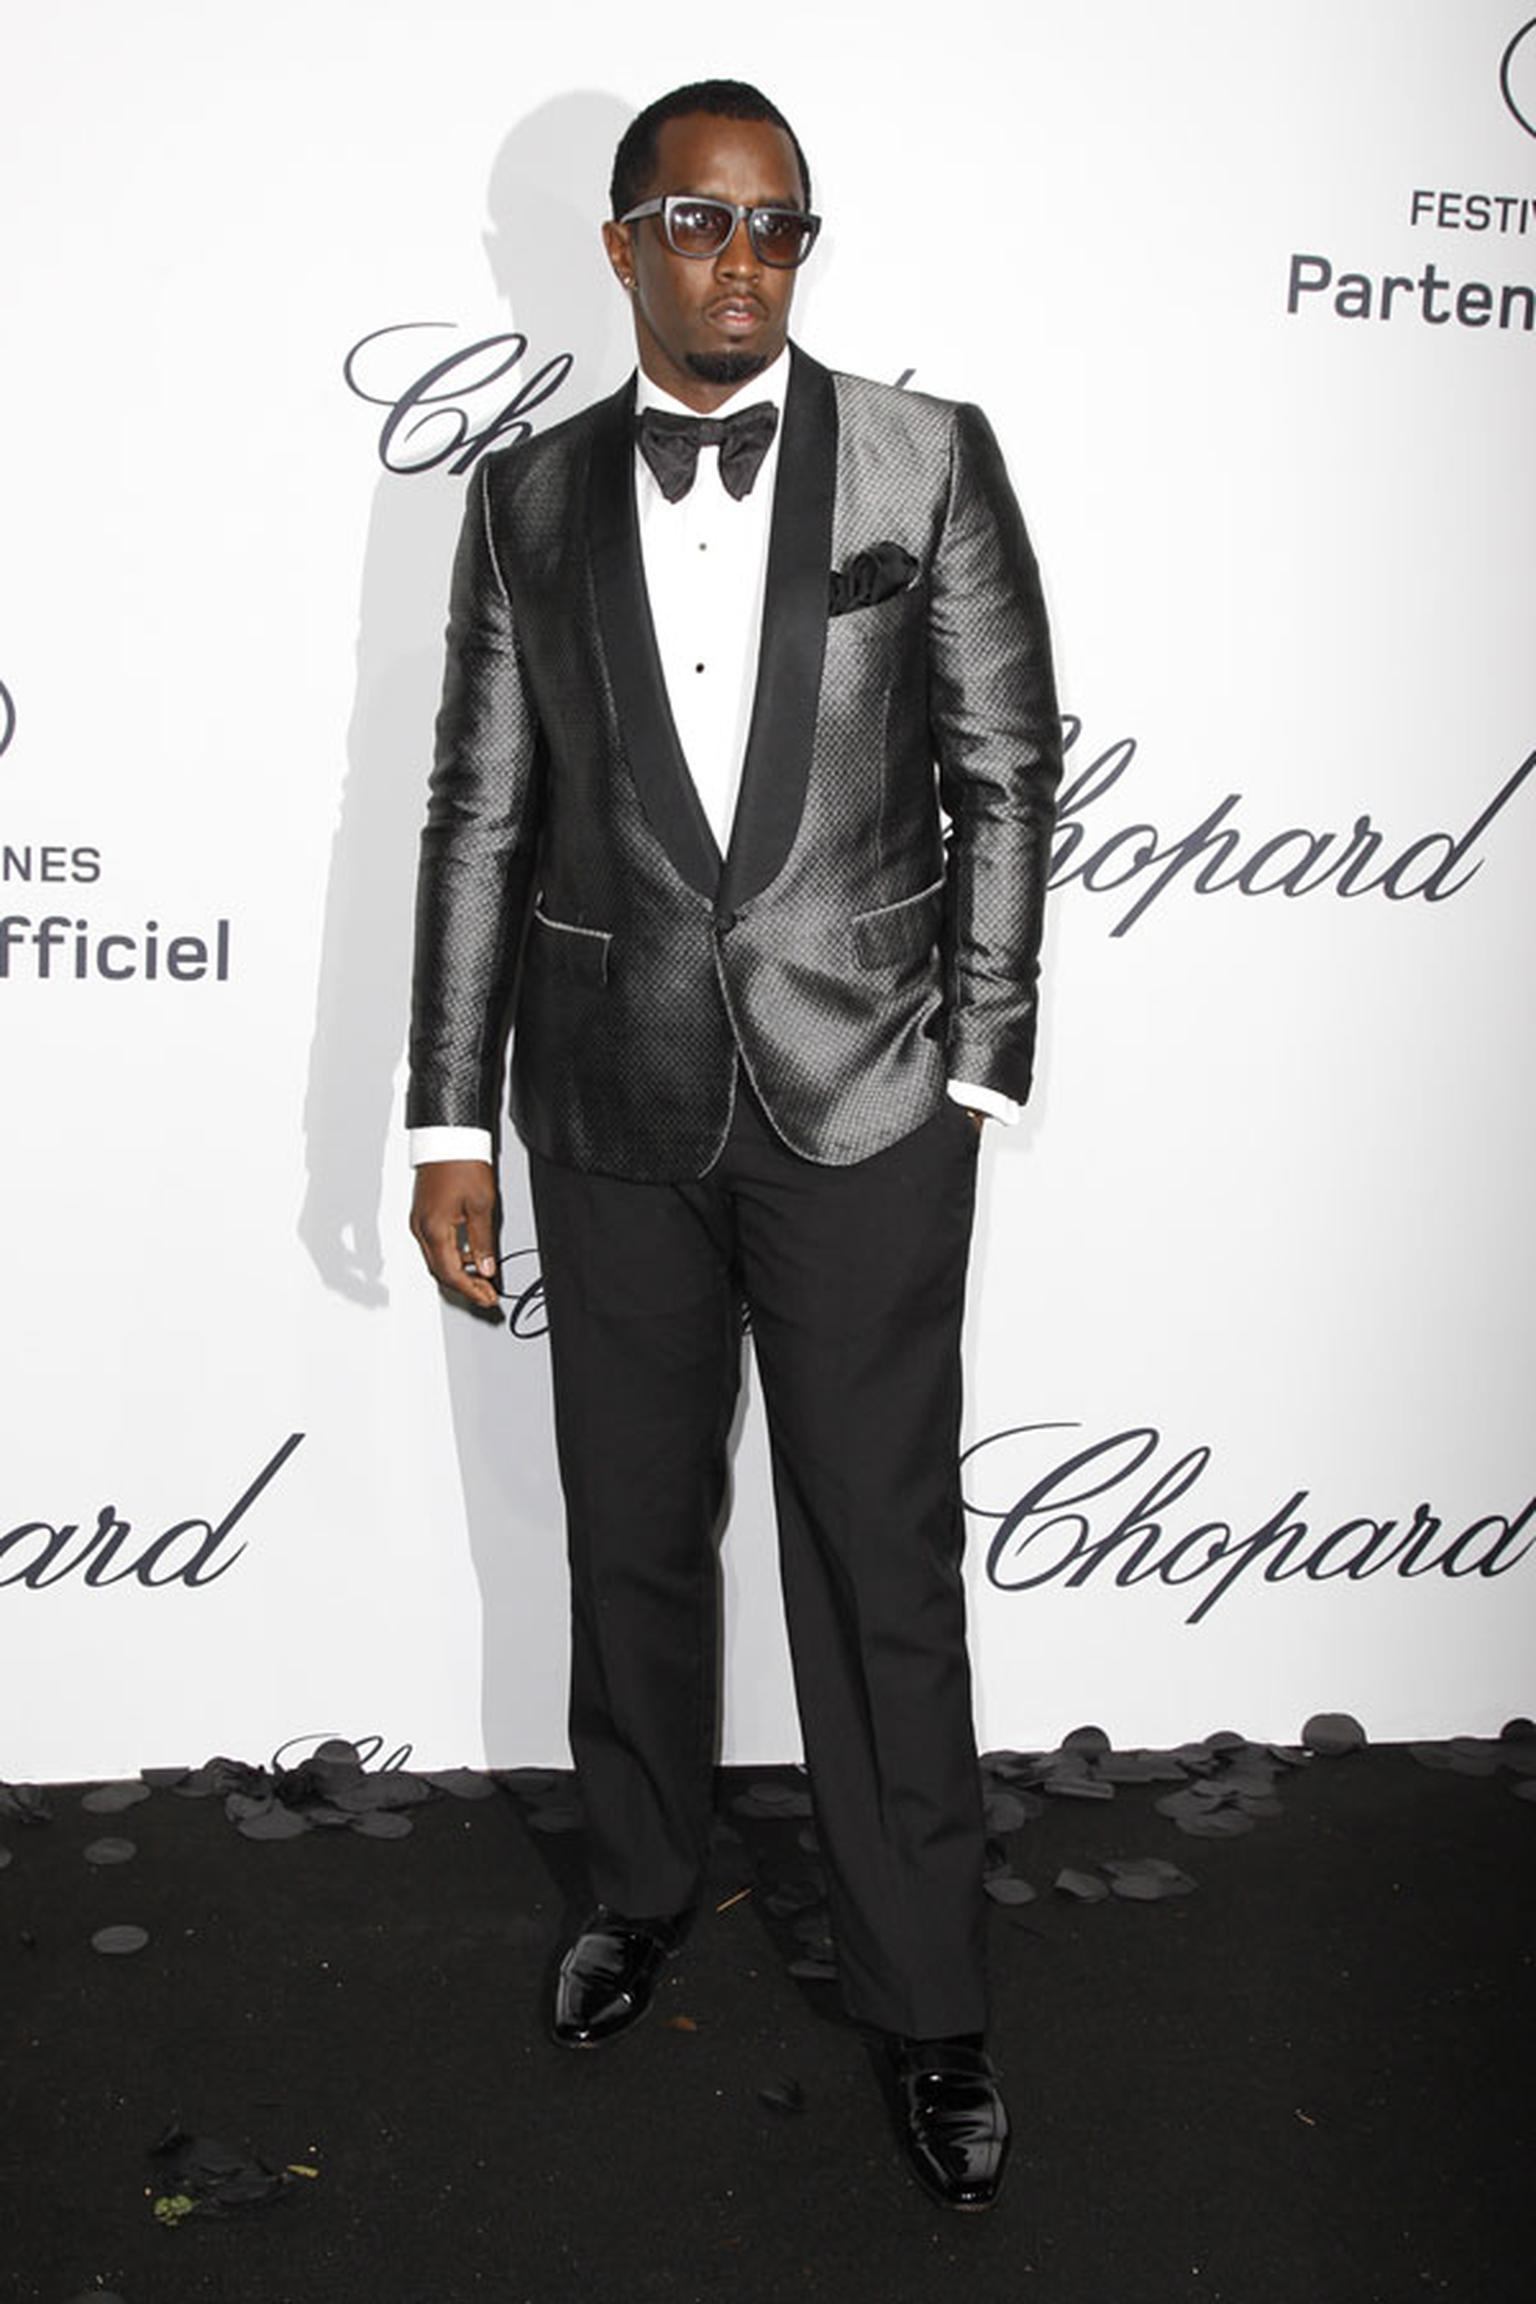 Sean_Combs_CHopard.jpg